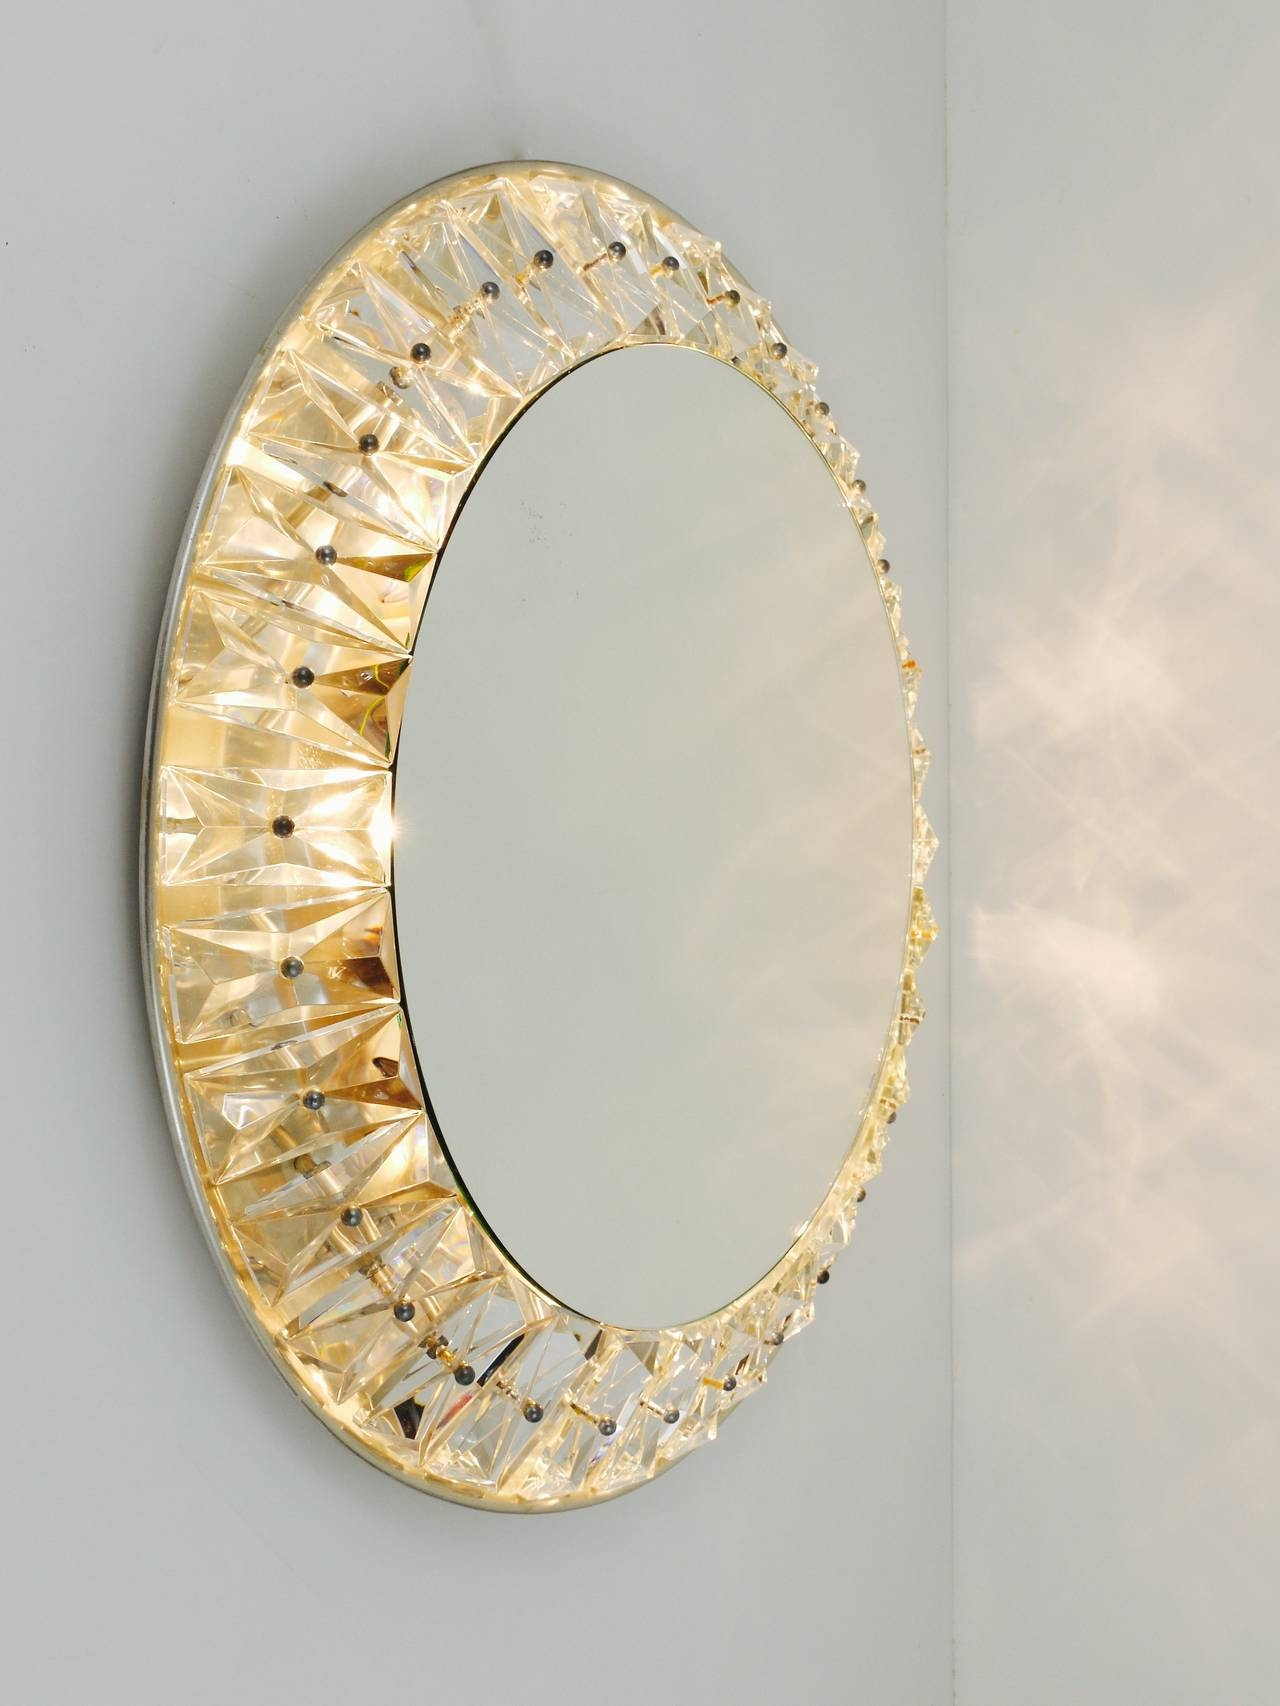 Big Round Bakalowits Backlit Wall Mirror With Huge Crystals For Huge Round Mirror (Image 9 of 15)